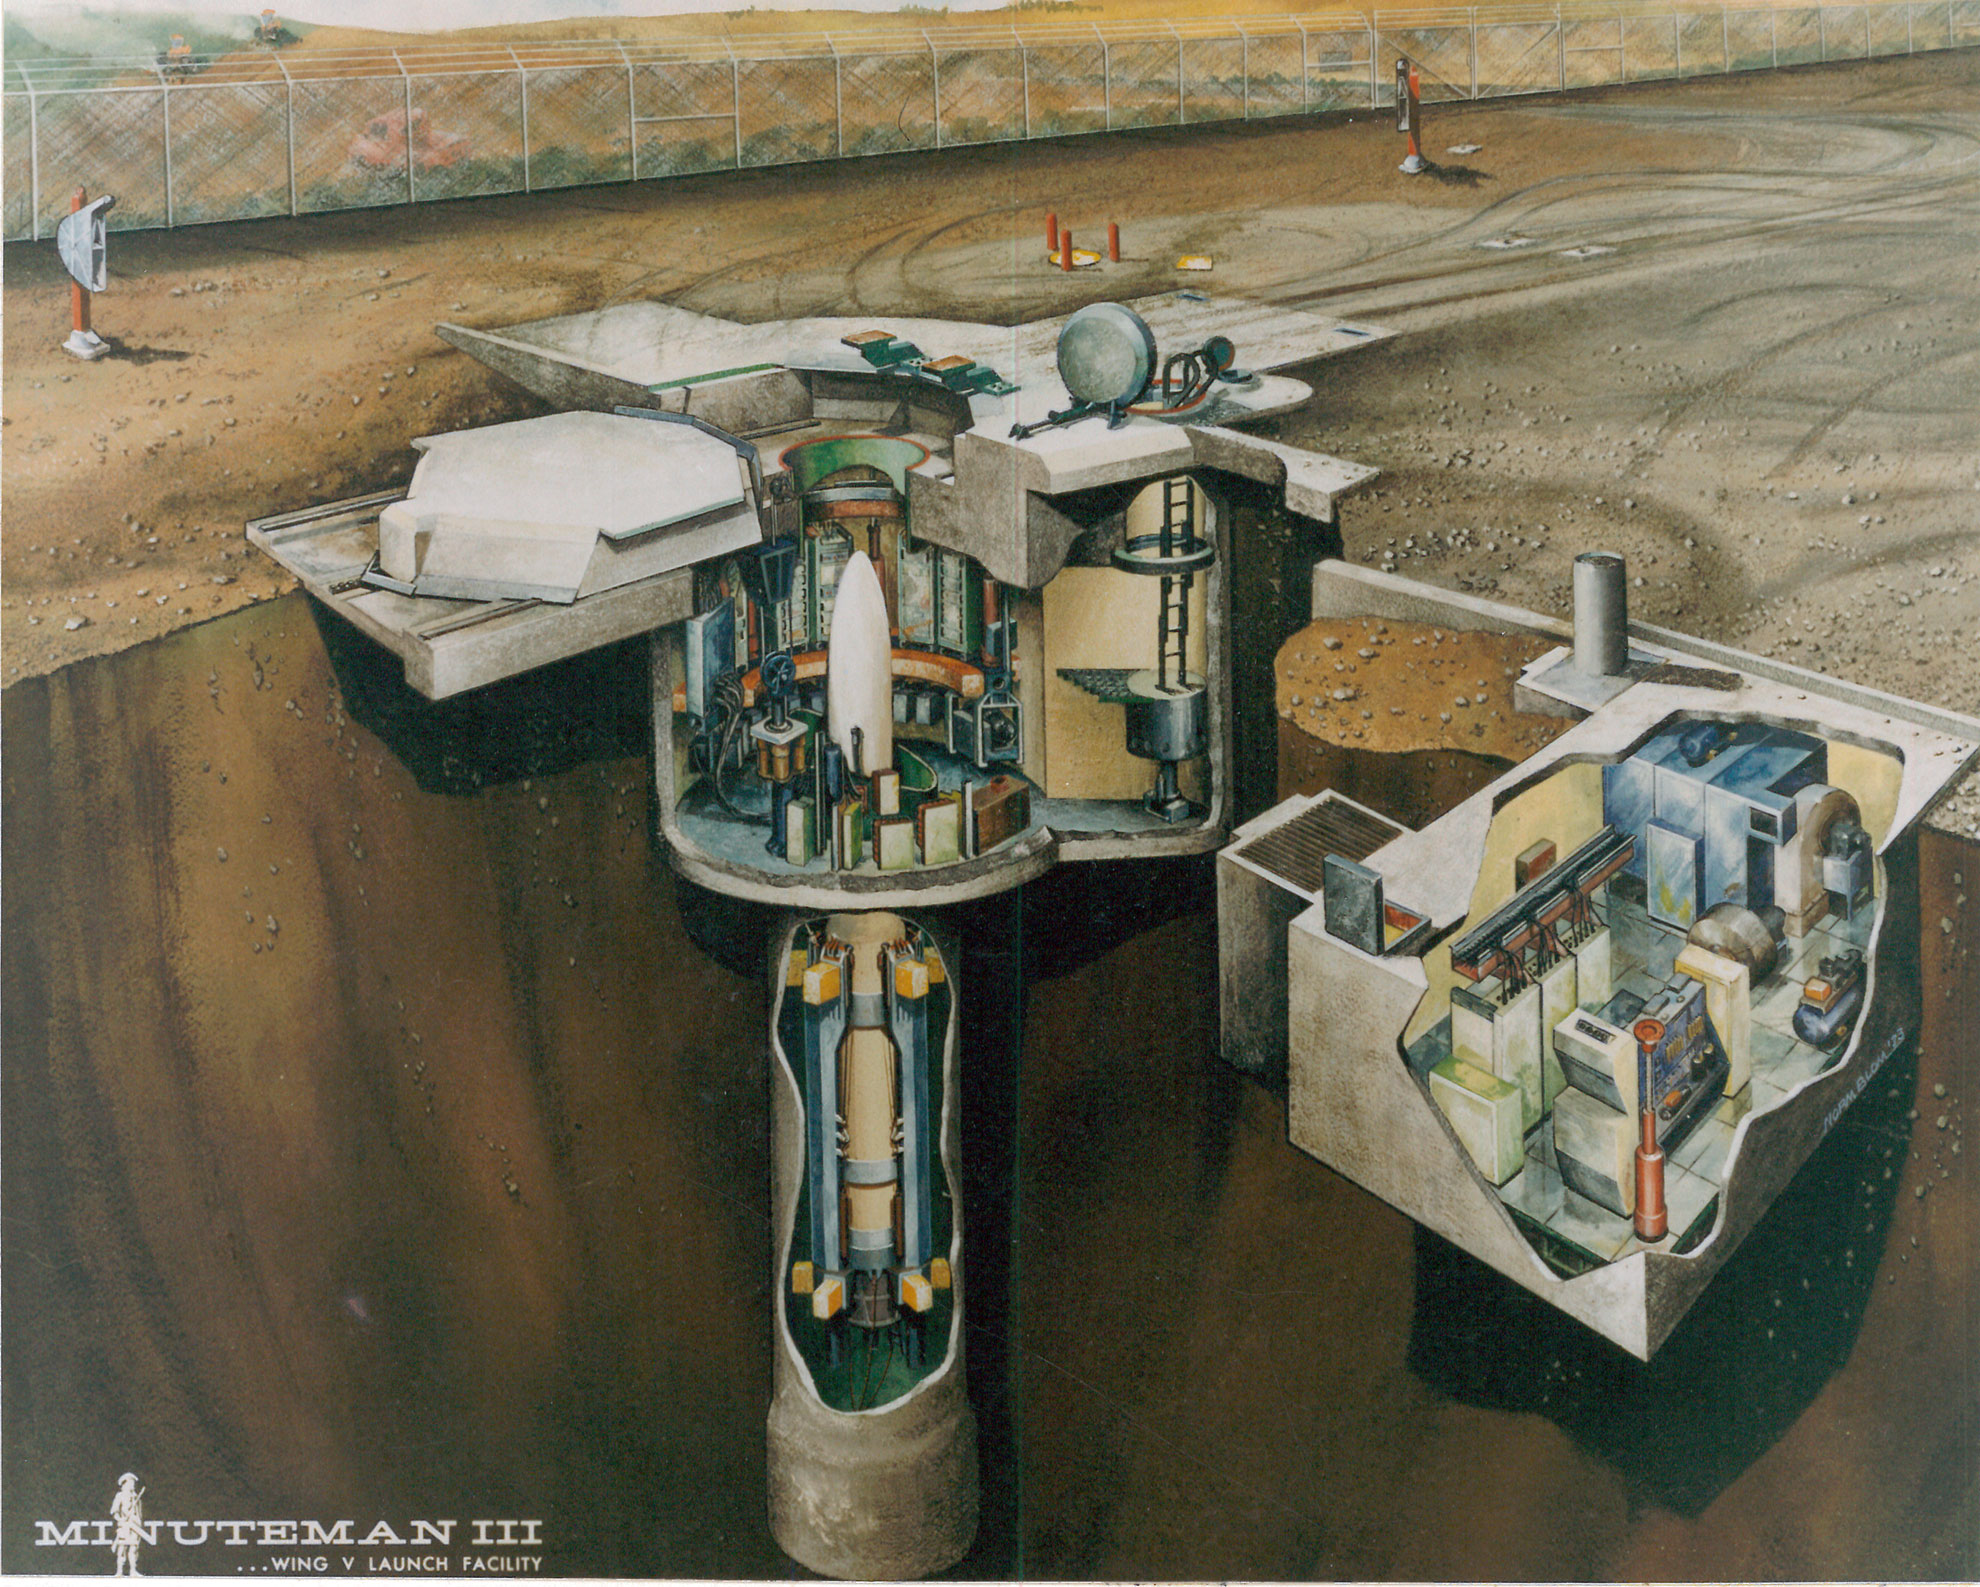 Cutaway drawing of the Minuteman III launch site and control post